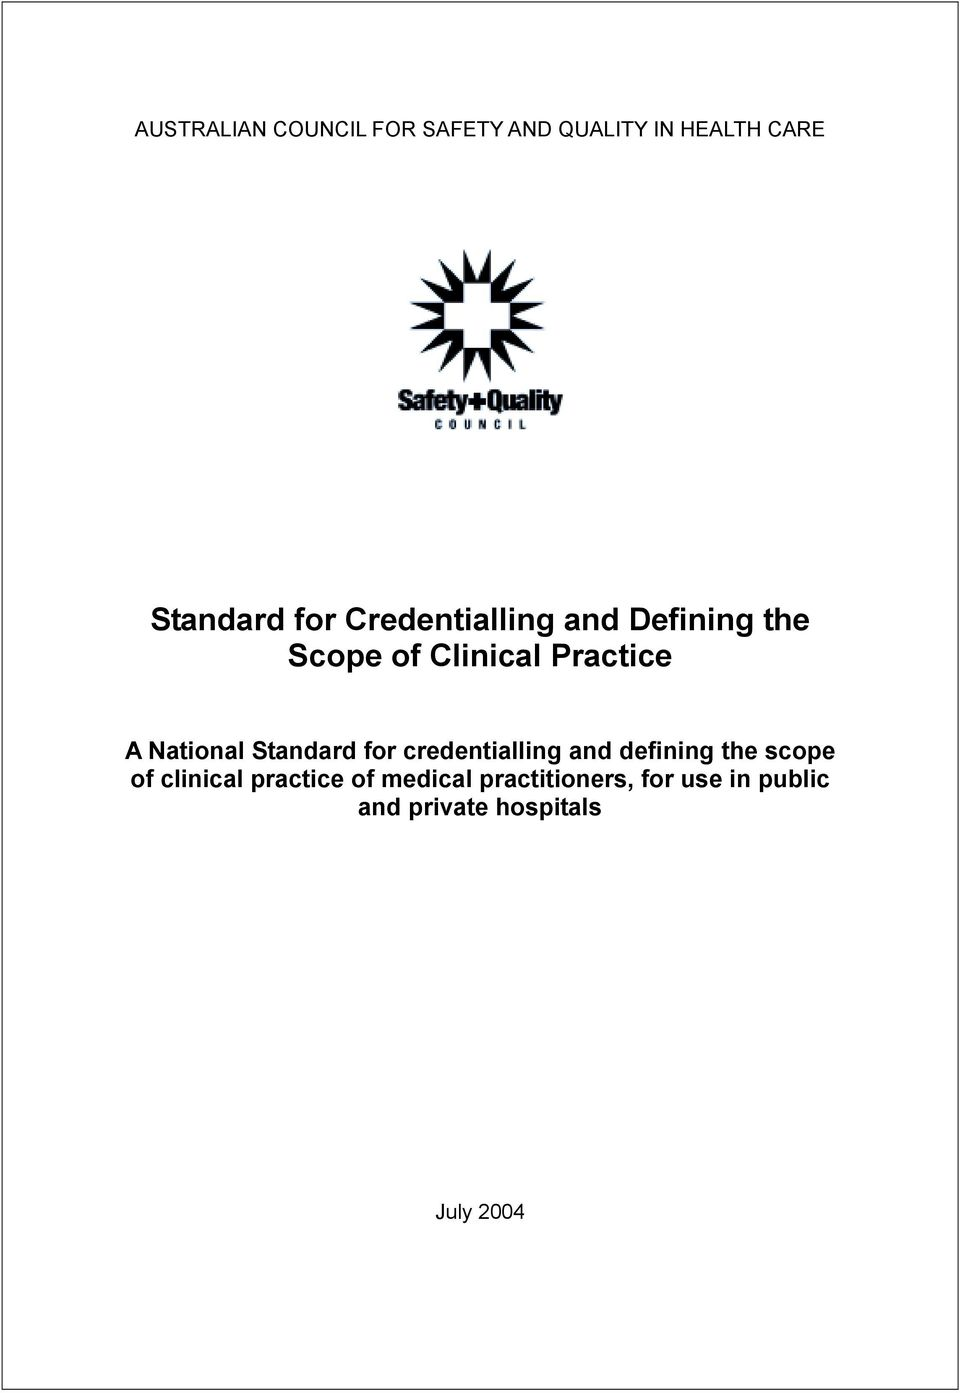 Standard for credentialling and defining the scope of clinical practice